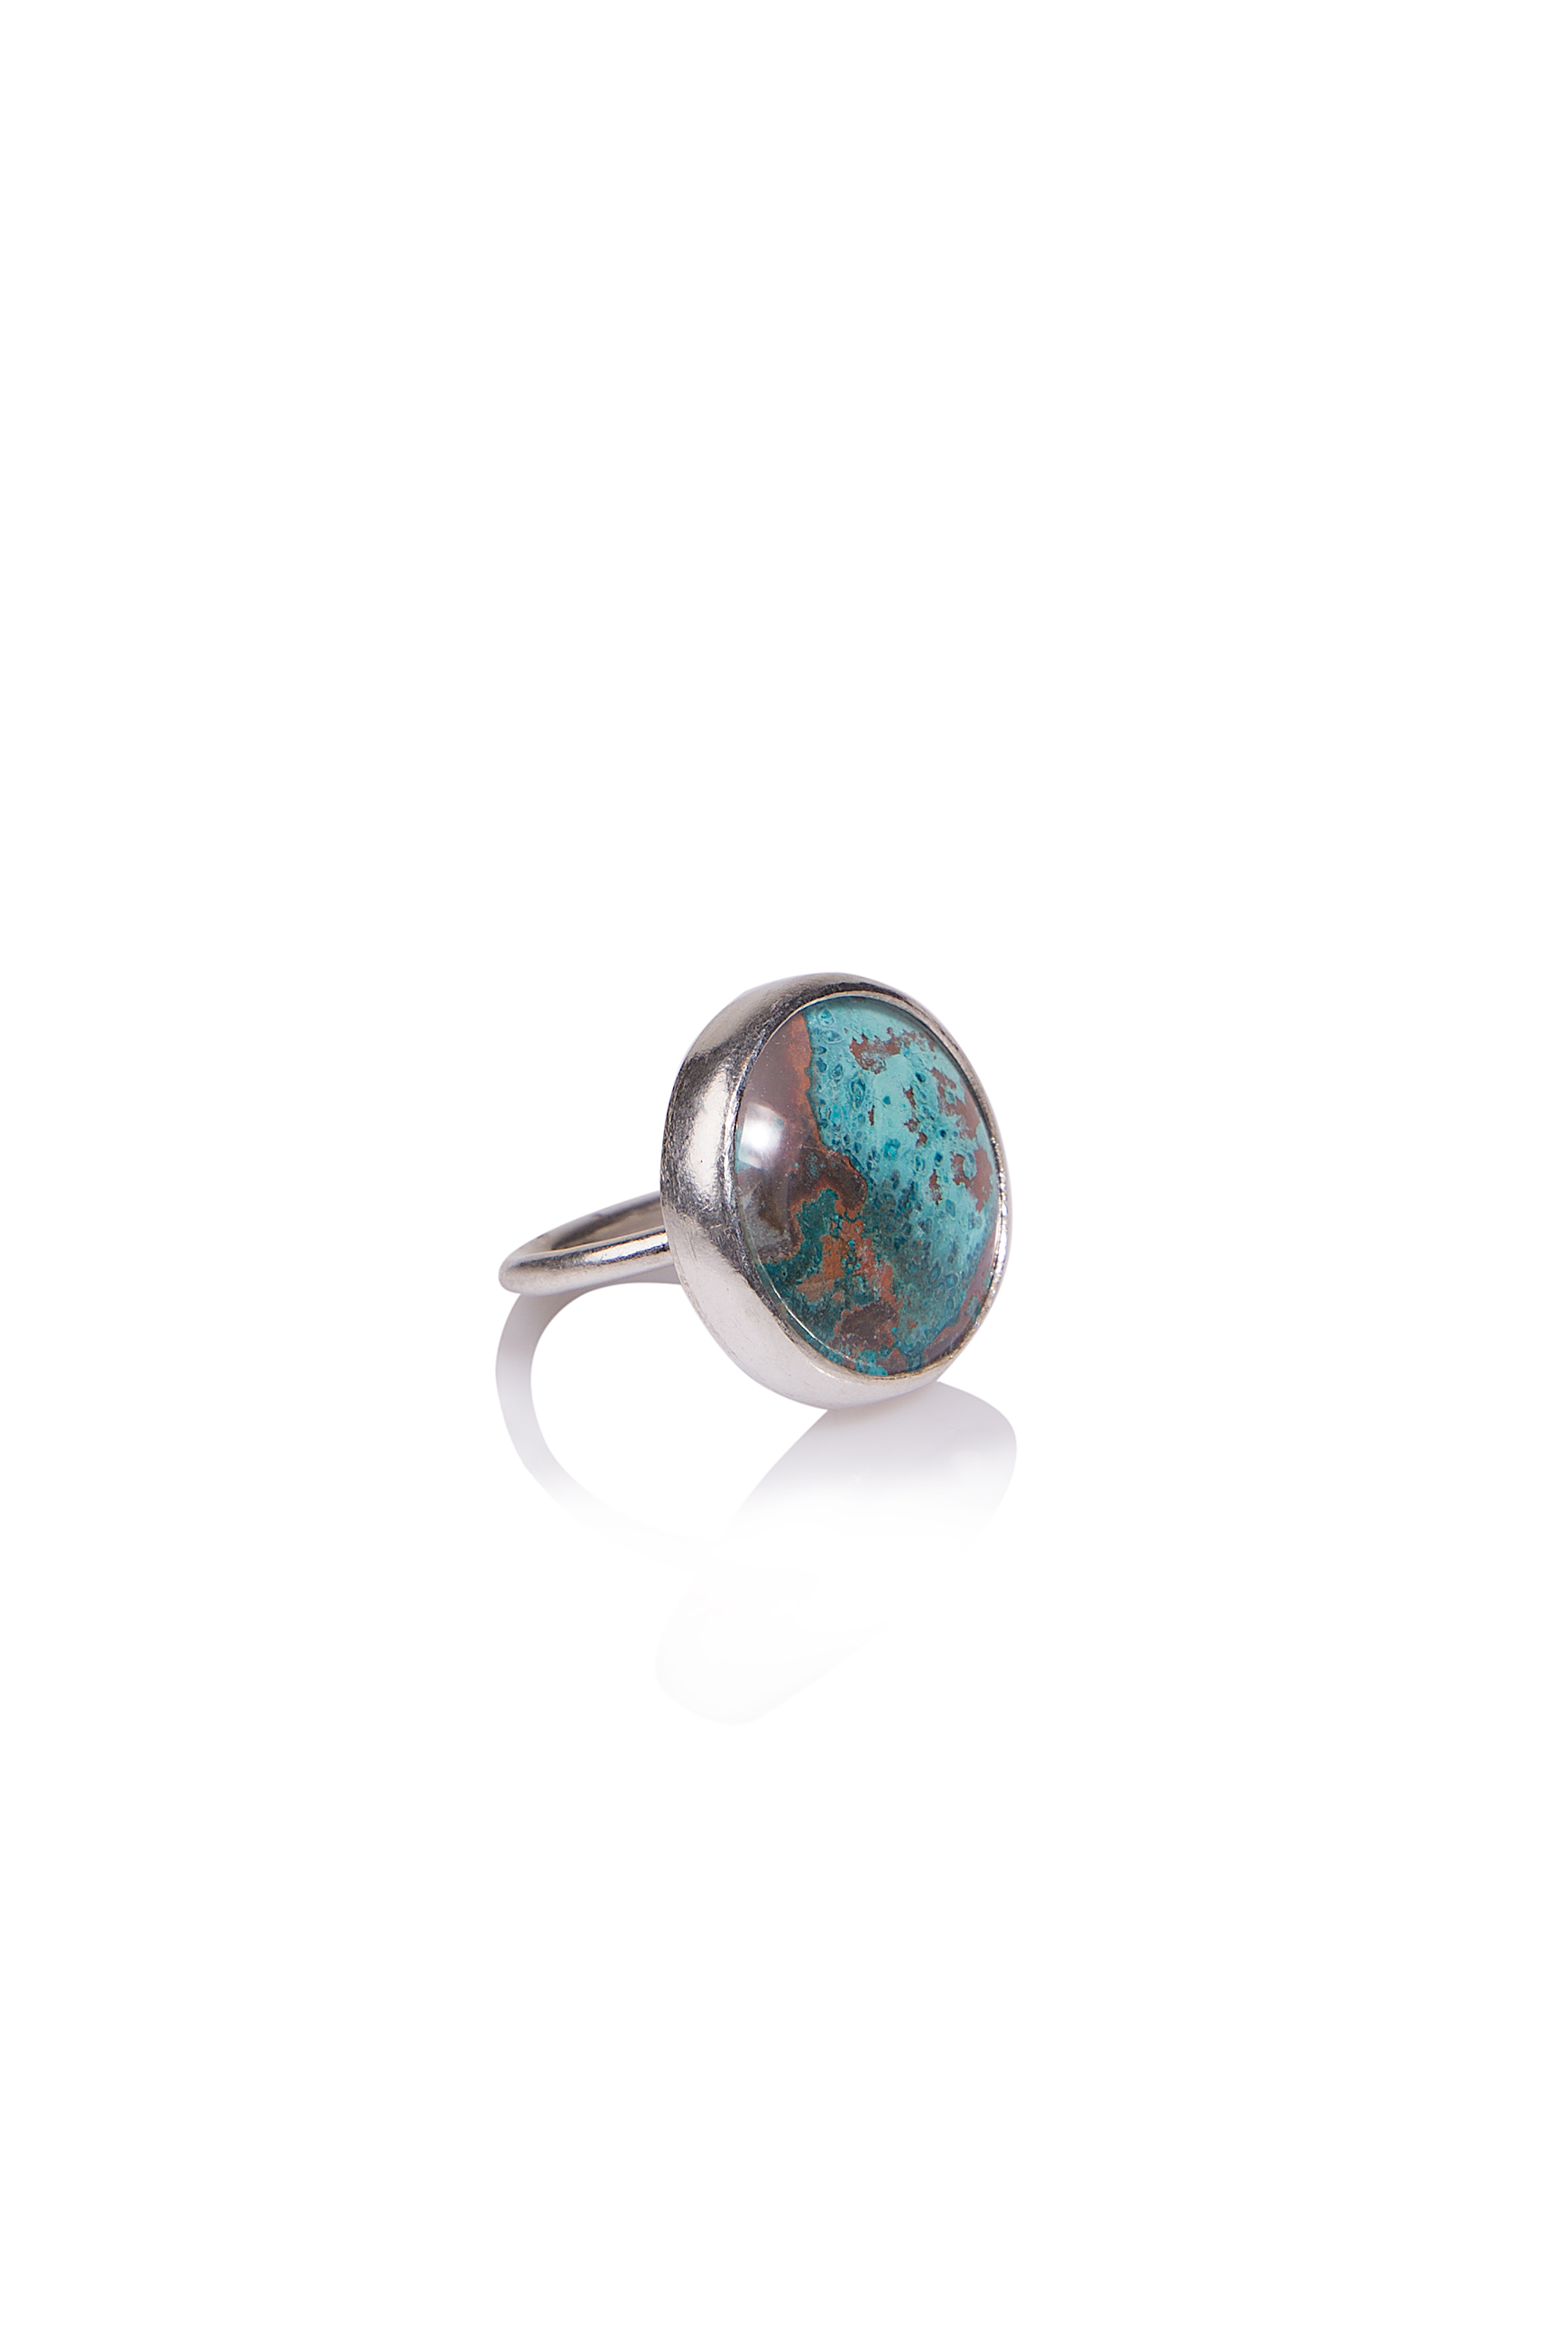 Medium Classic Copper Cocktail Ring  Sterling silver with copper patina set under glass